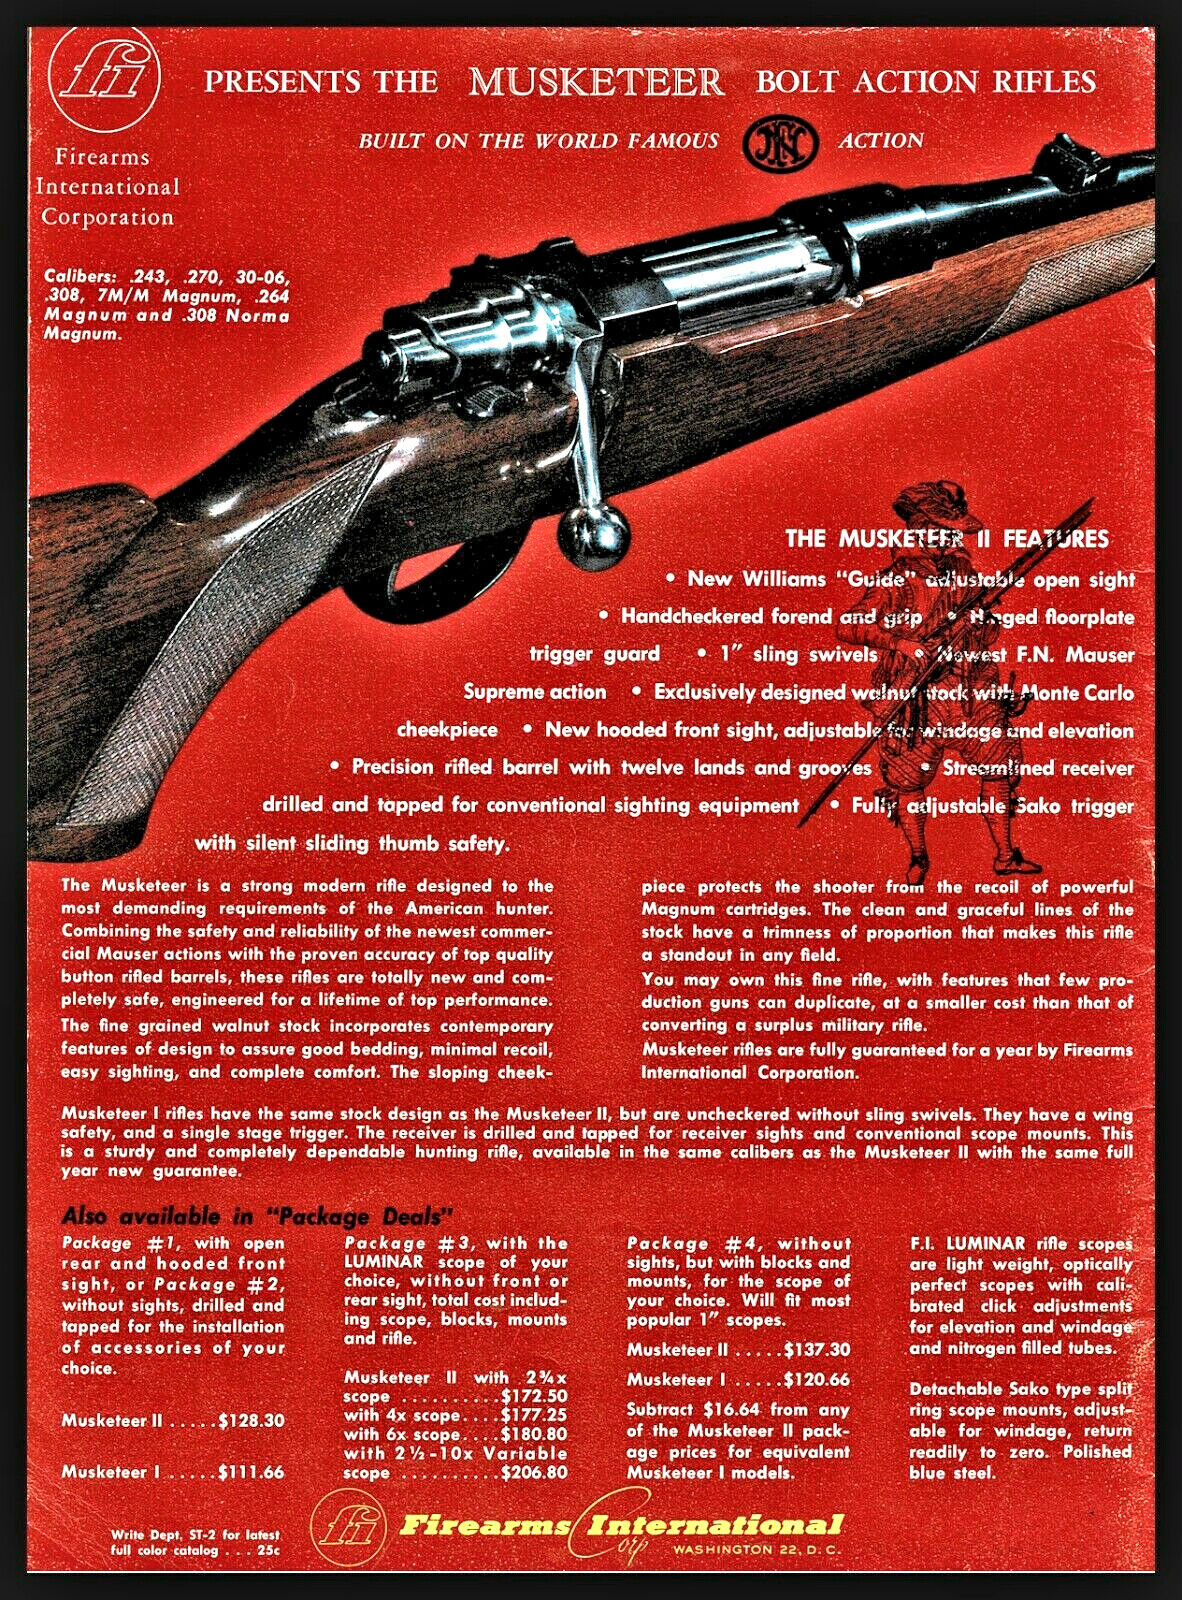 Image 1 - 1963 MUSKETEER II Bolt Action Rifle PRINT AD Firearms International Advertising